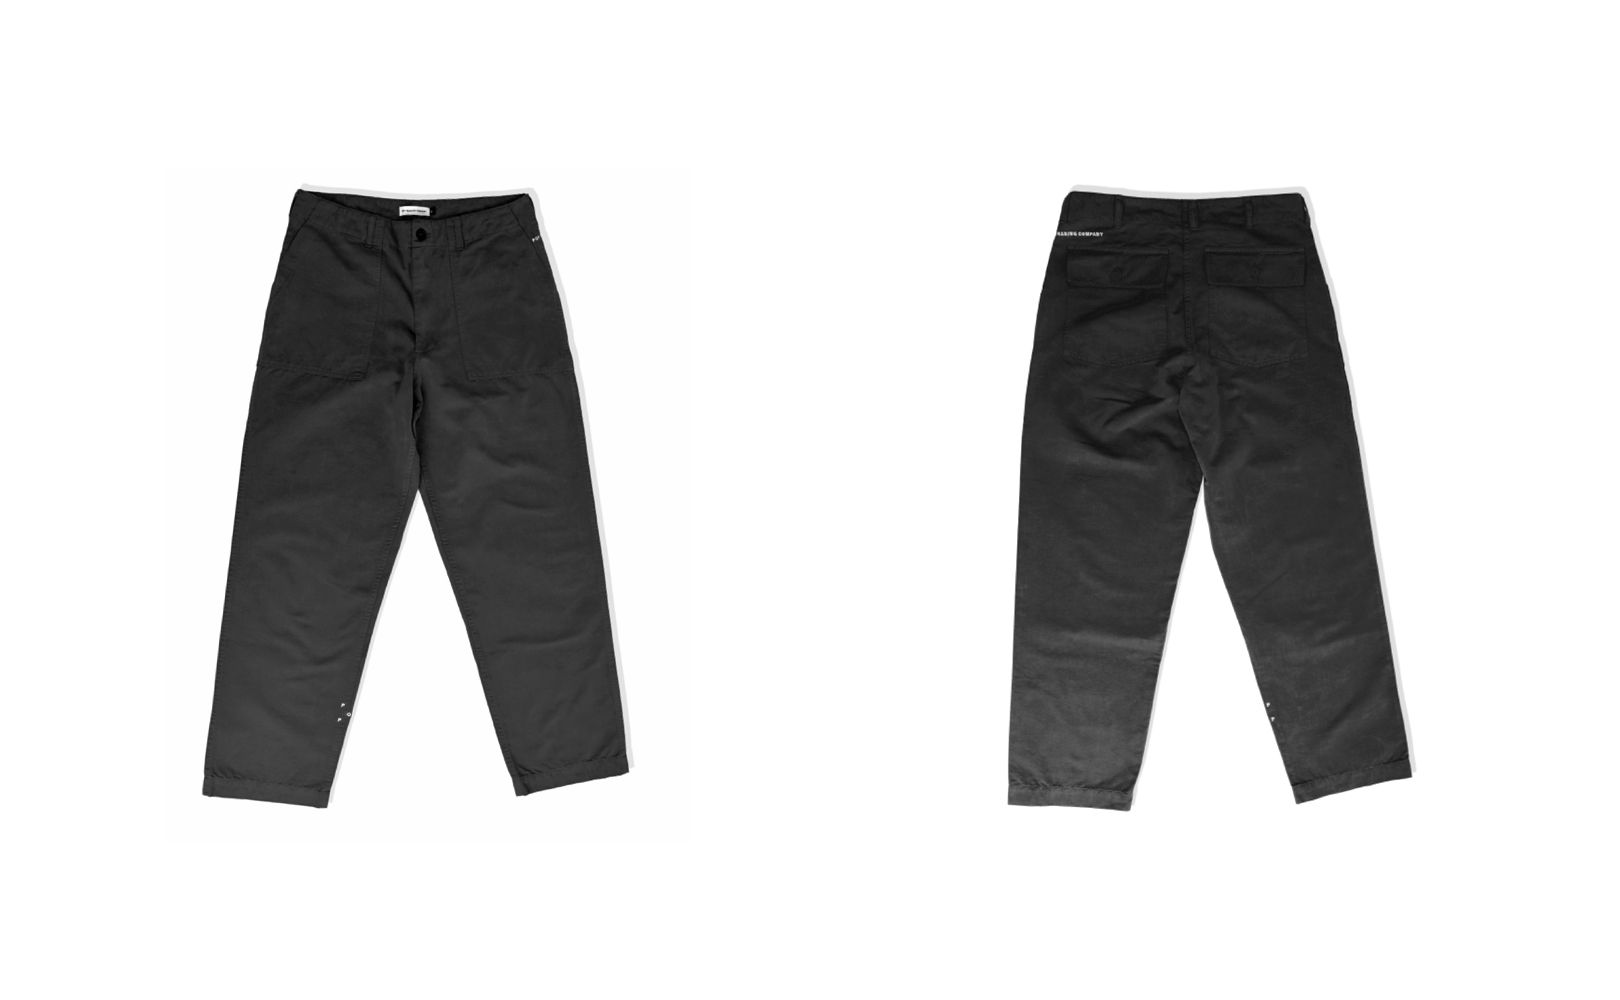 pop-trading-company-aw17-product-mr-porter-exclusive-6-phatique-farm-pants